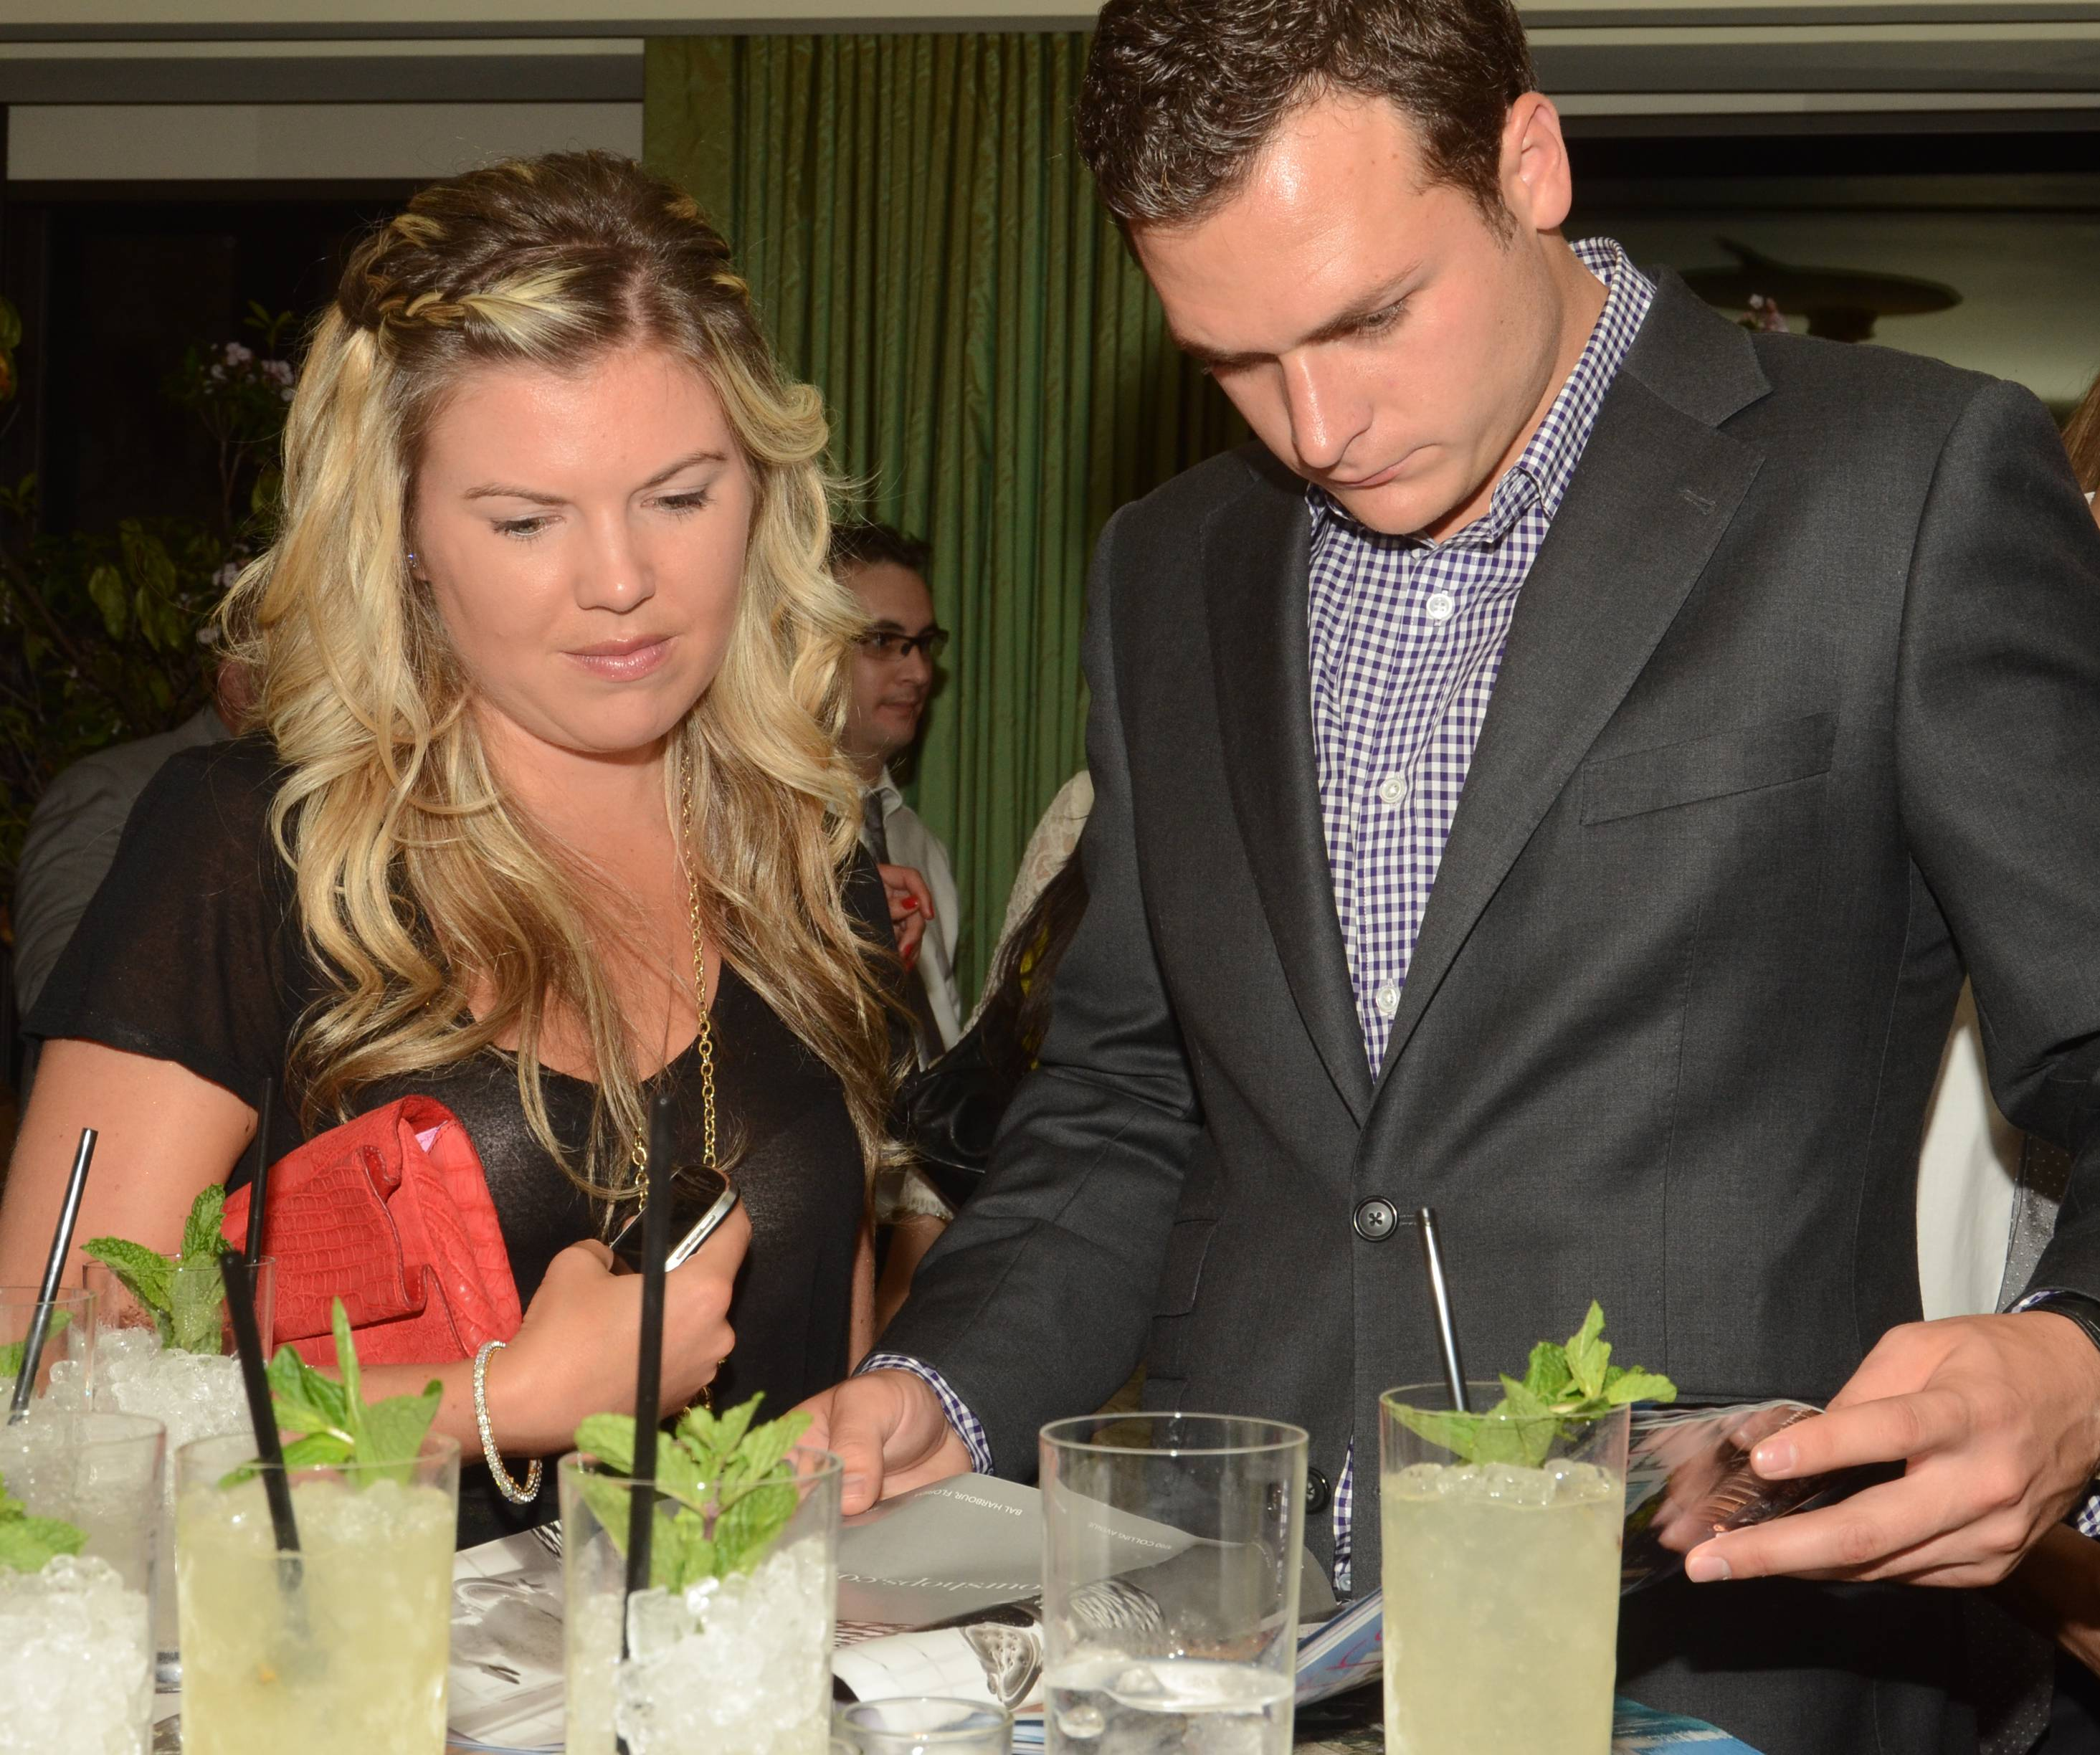 Party Guests Browse Premiere Issue of Ultratravel U.S.